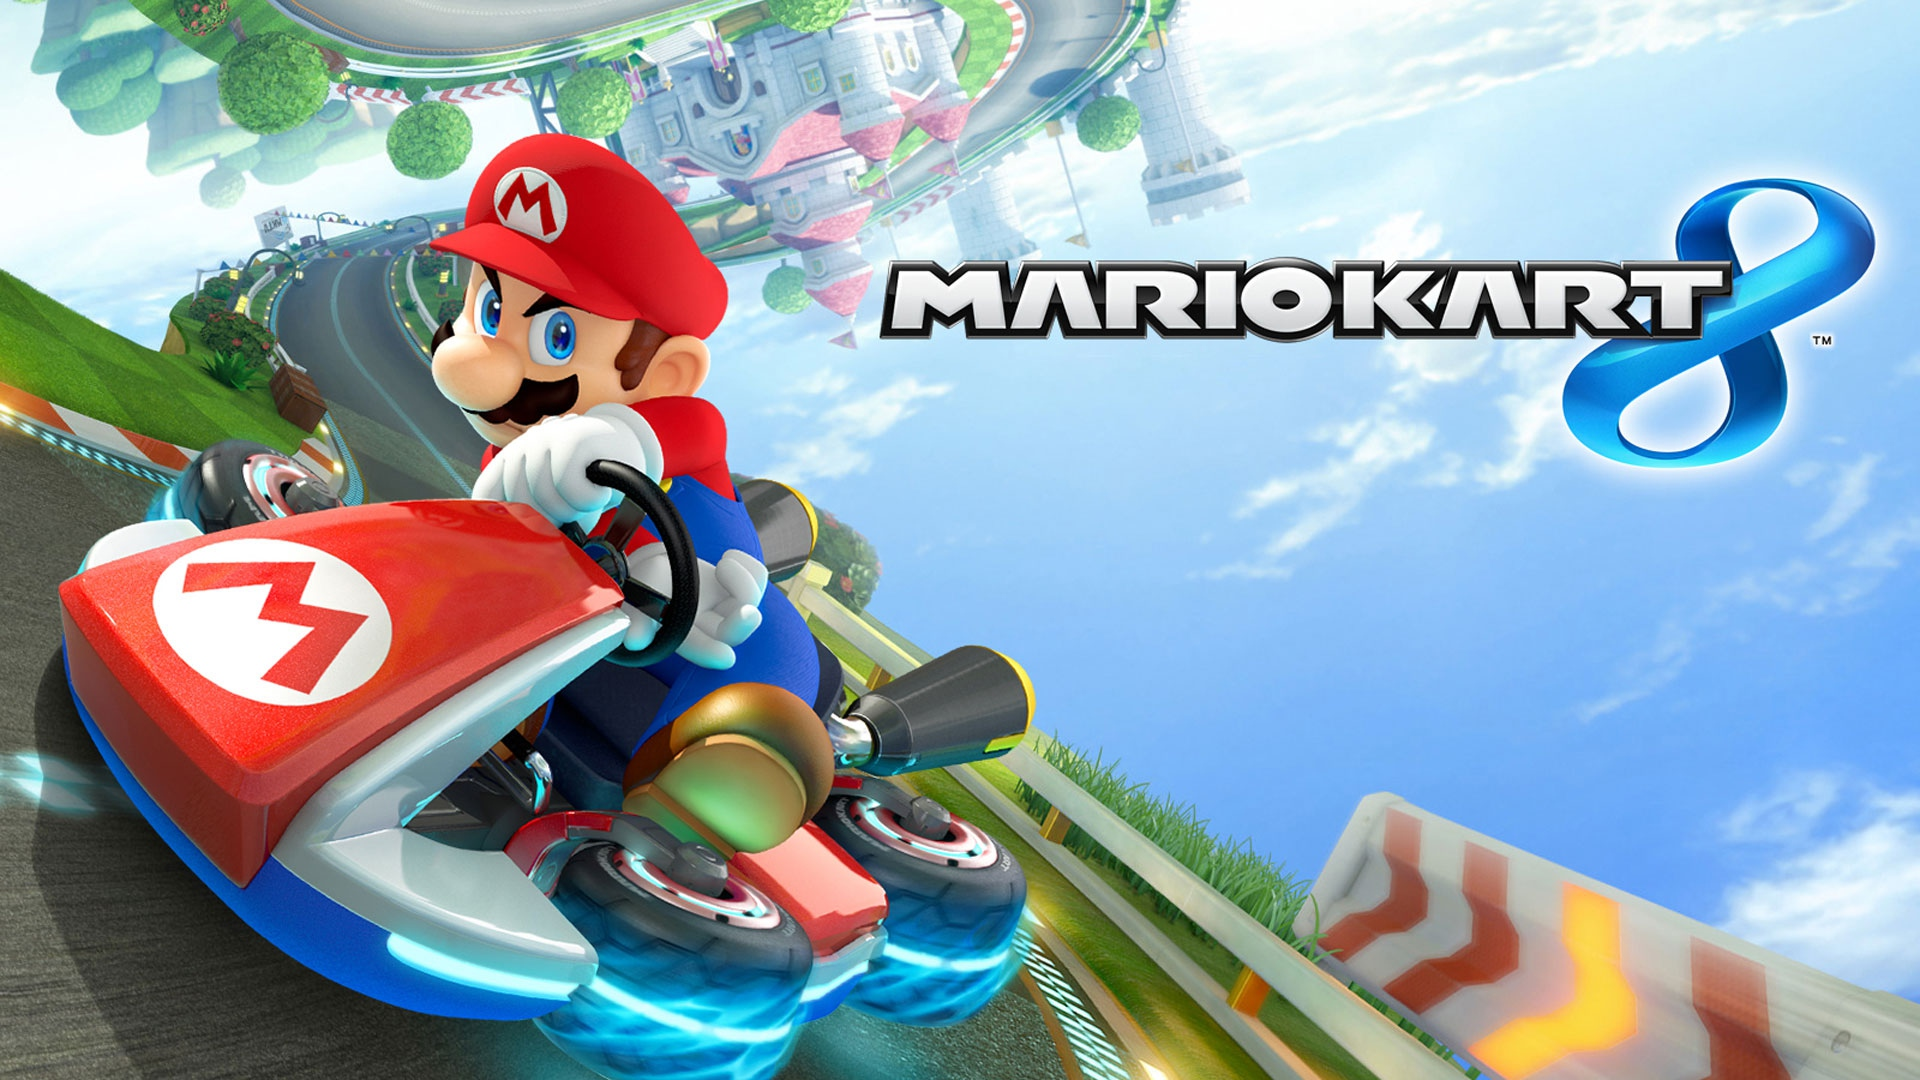 Free Download Fondos De Mario Kart 8 Wallpapers Hd Friki Web